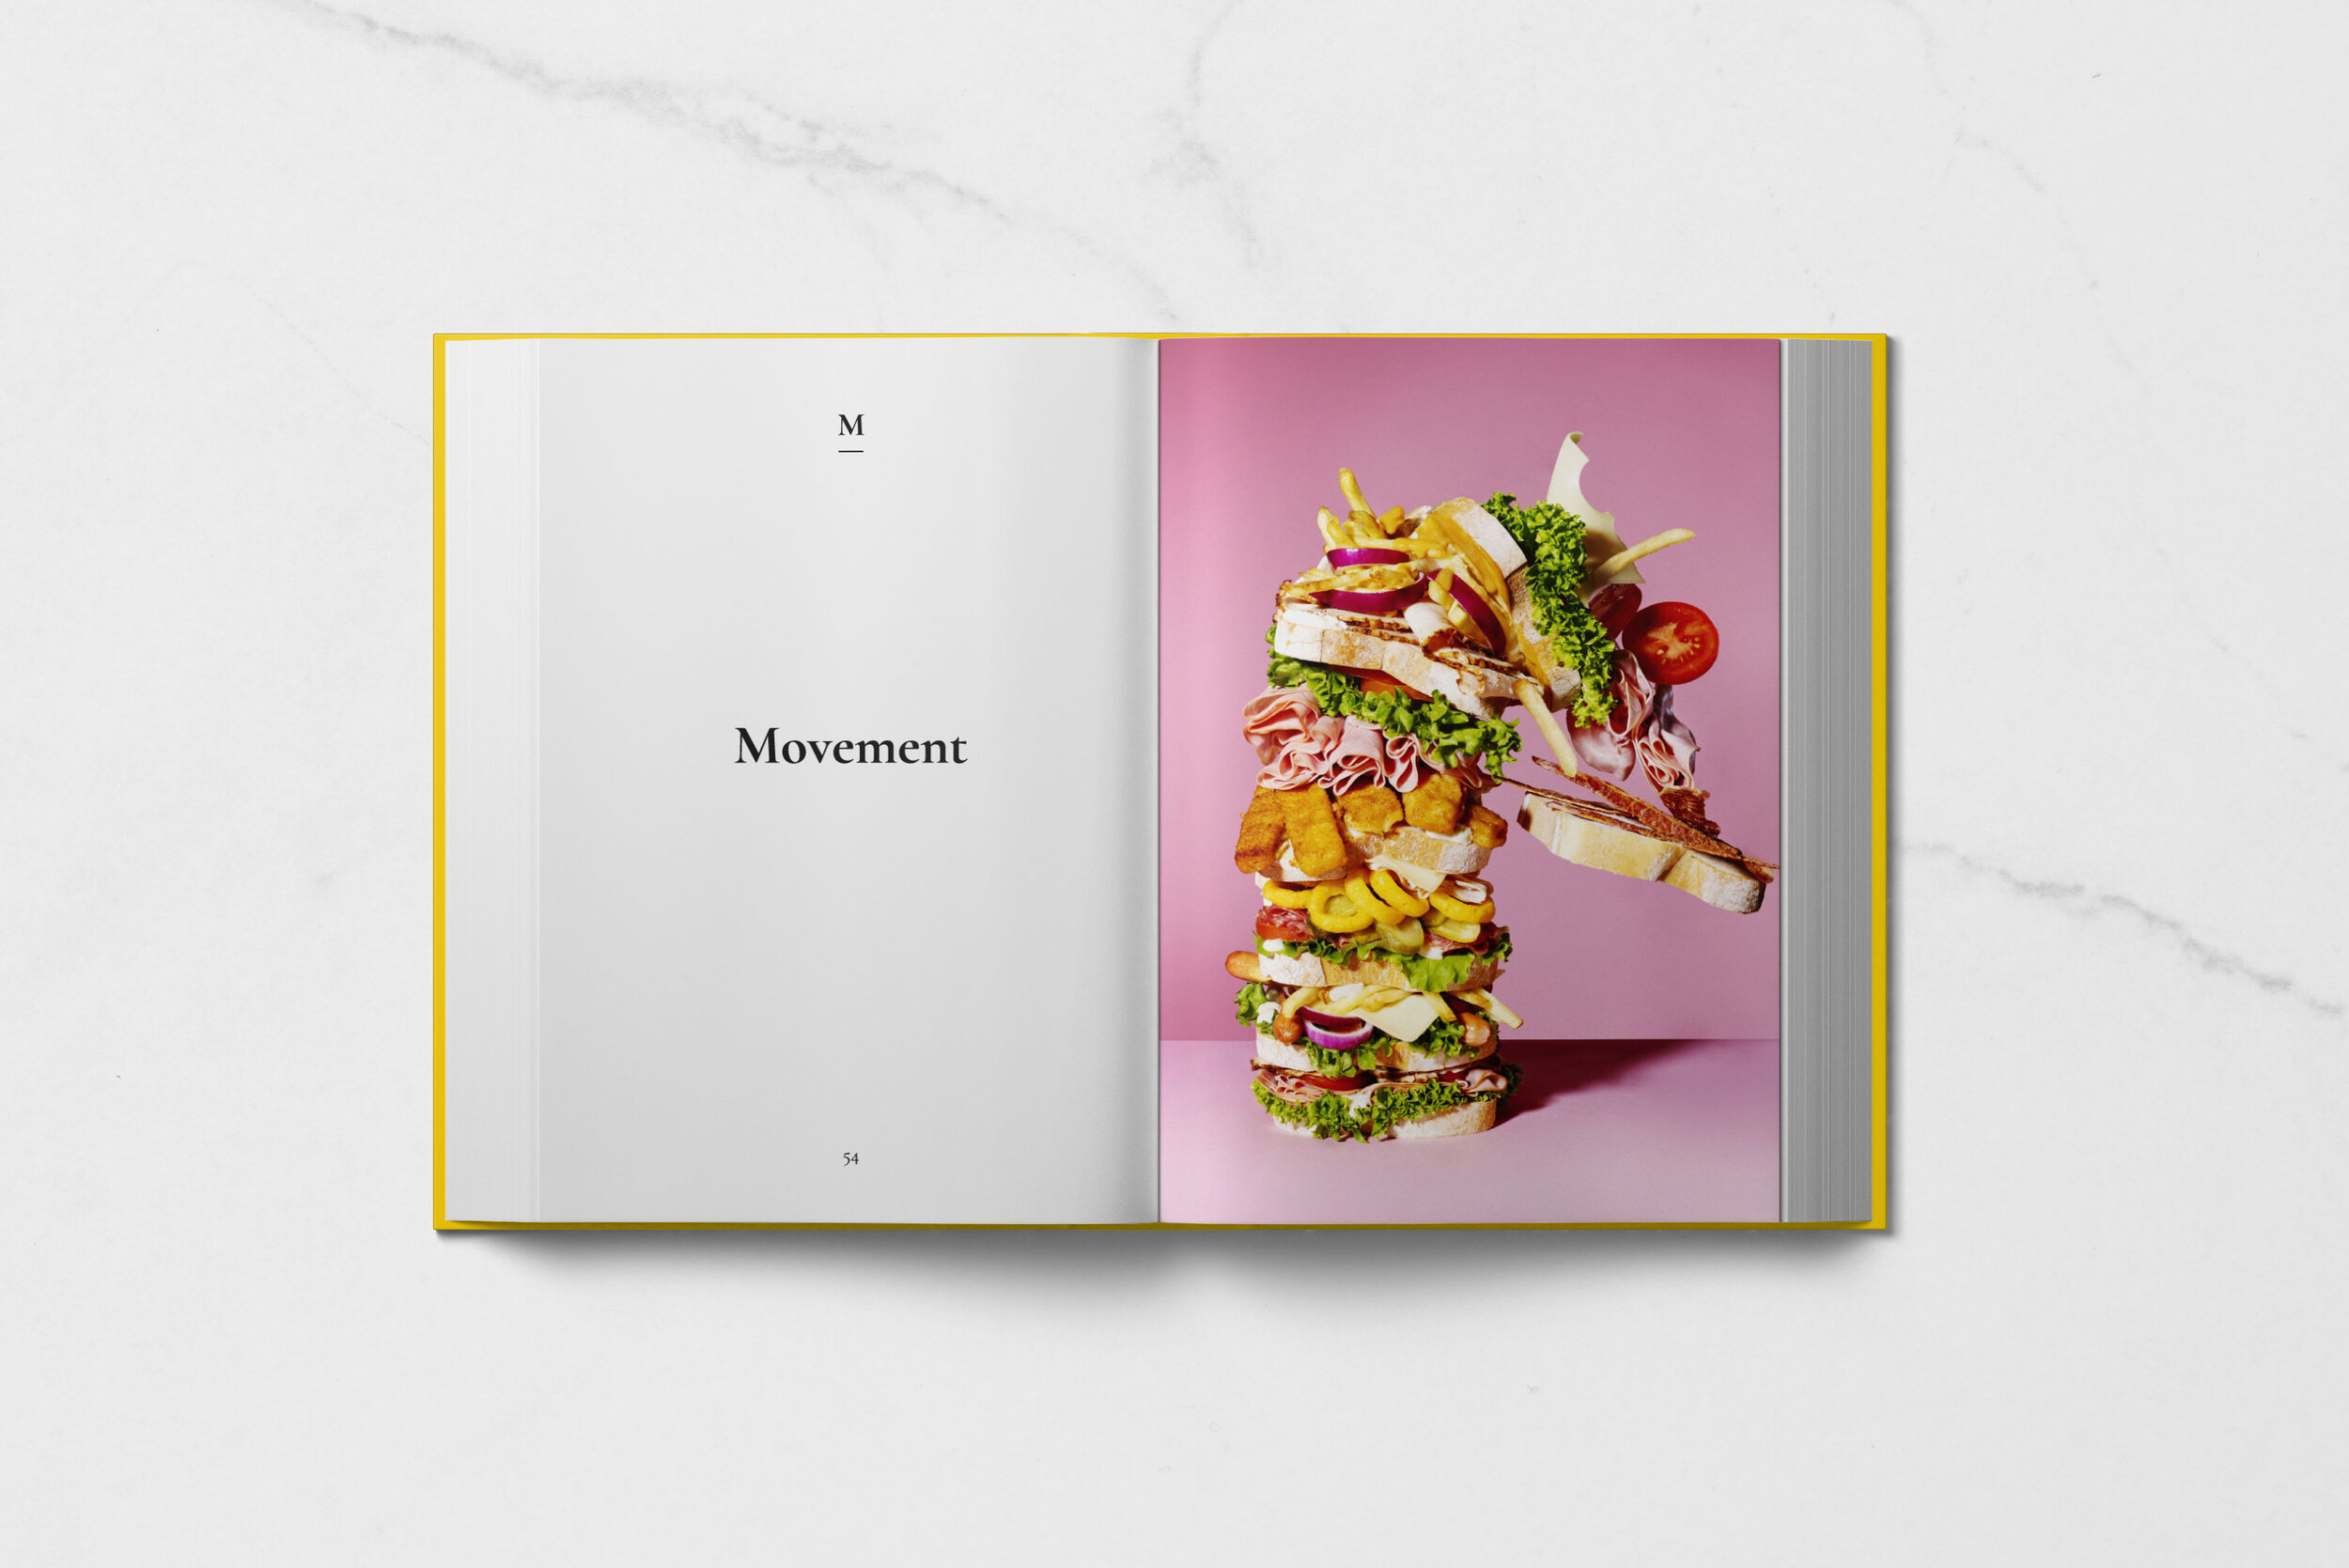 Lucy Ruth Hathaway The Food Styling Encyclopaedia, food photography art book, commercial food stylist, commercial food photography, food stylist tricks, food styling photography vocabulary, food artist, sandwich food styling